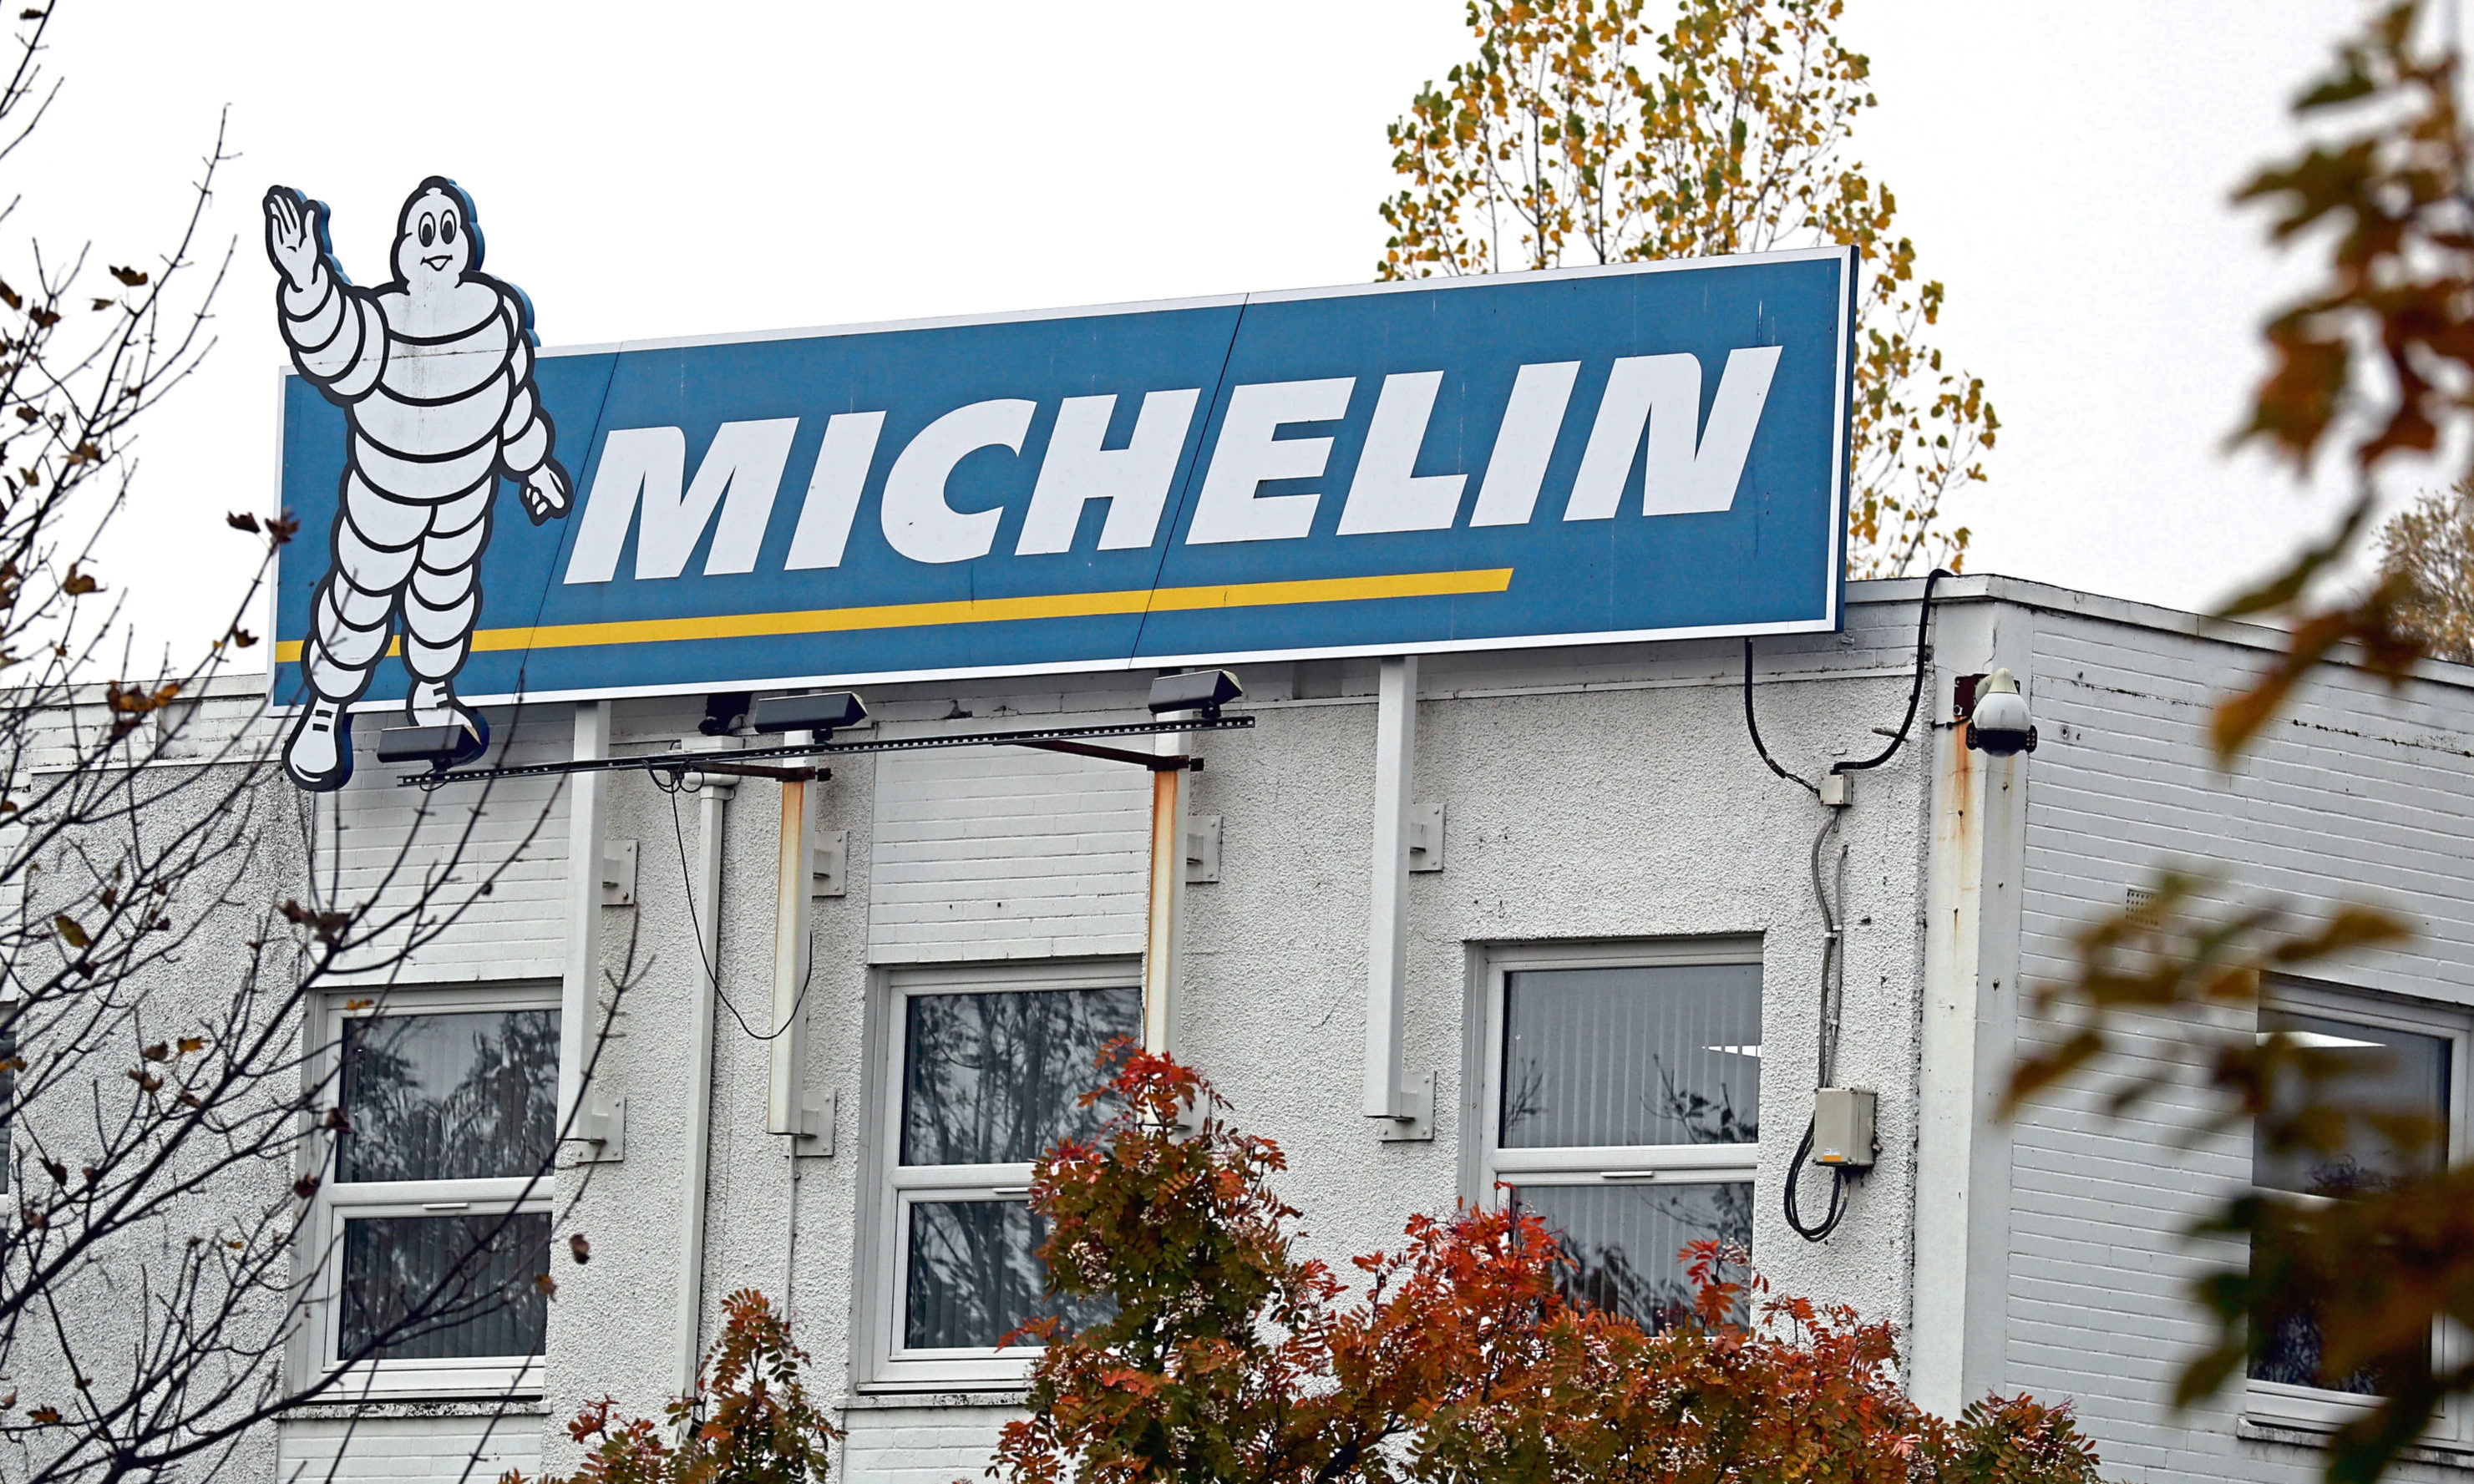 The Michelin site in Dundee